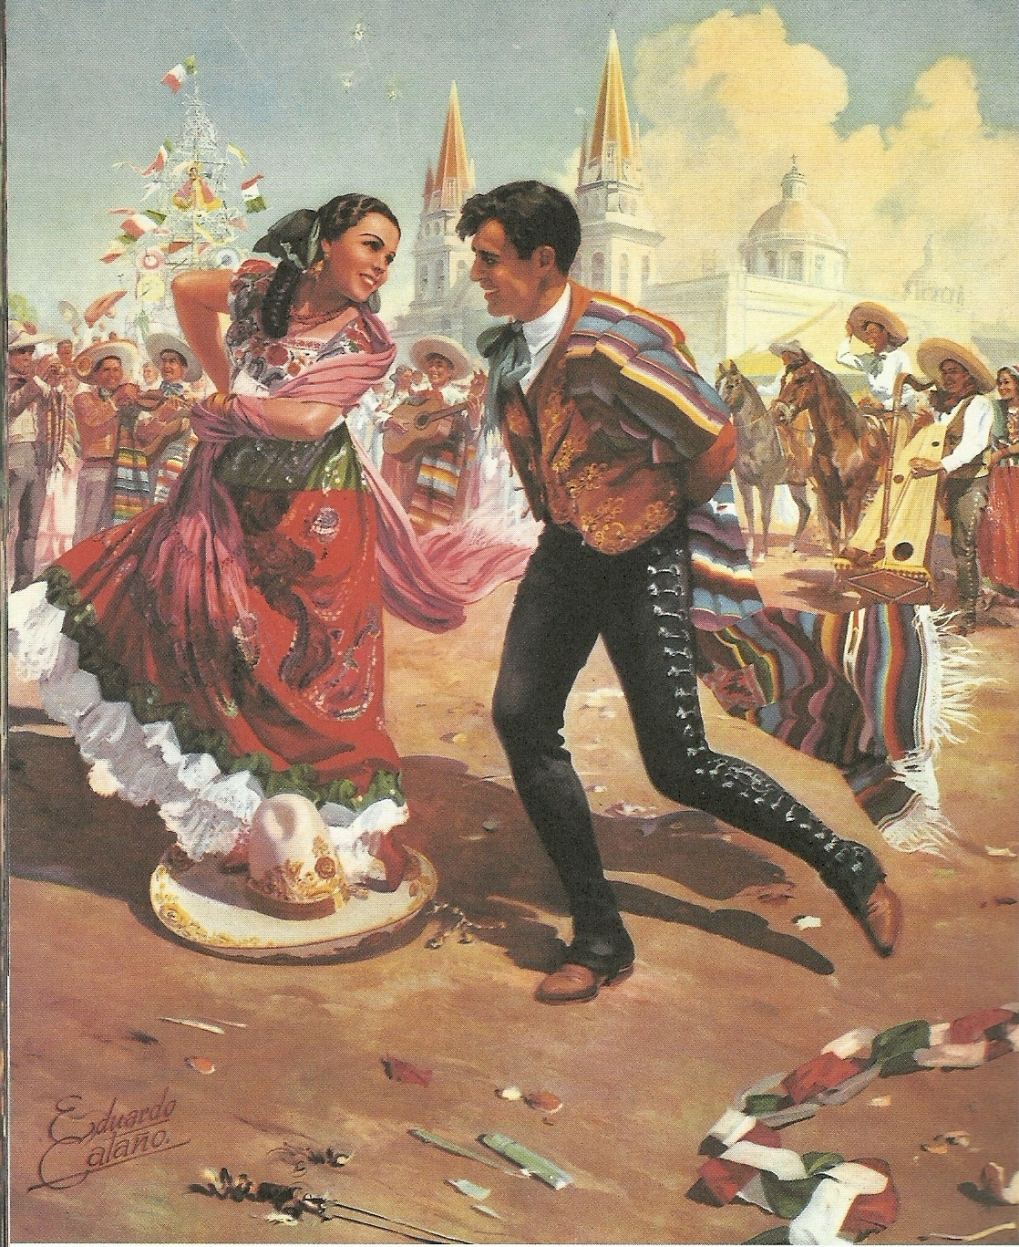 The Jarabe Tapatio